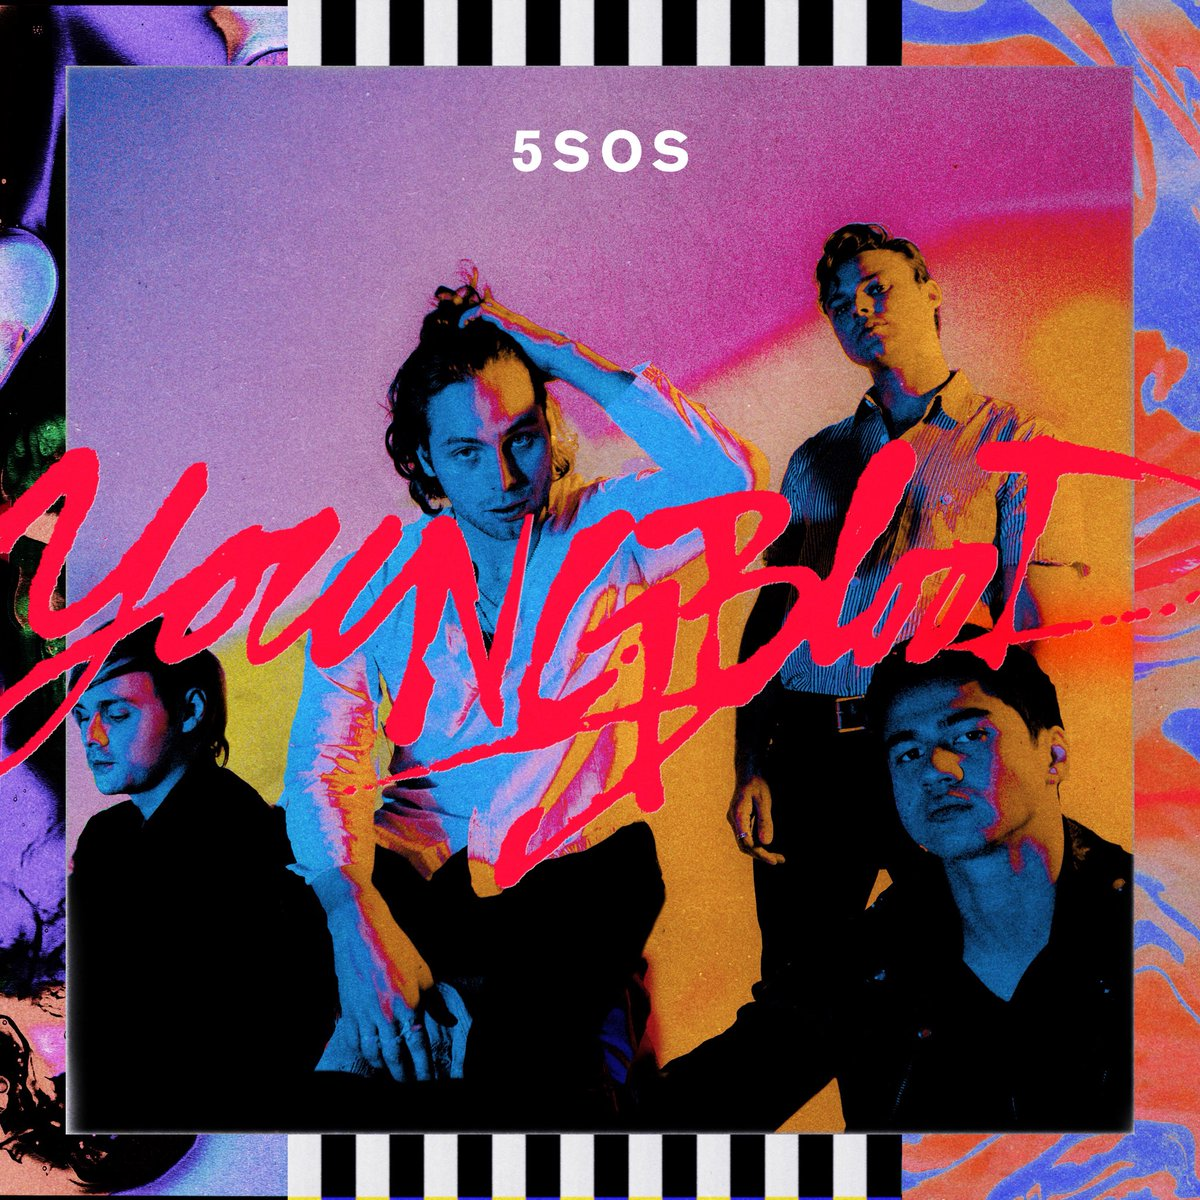 This has got to be the number 1 record this week. Go get it ! @5SOS